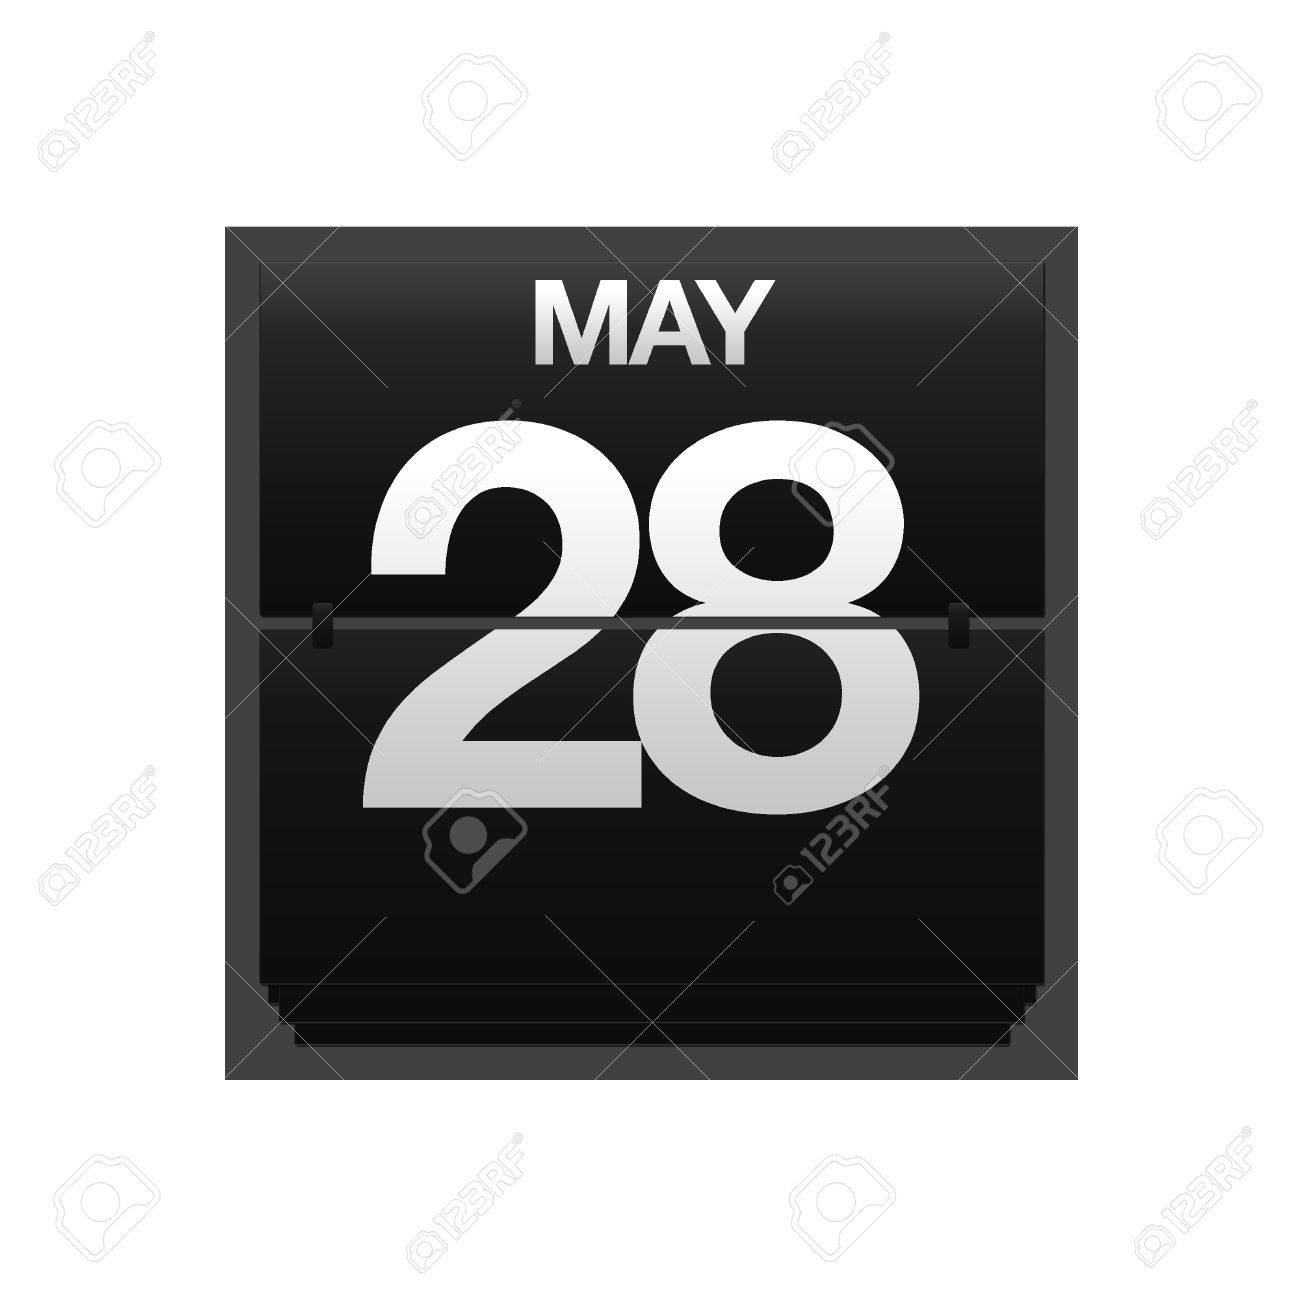 Calendar may 28 clipart png royalty free library Illustration With A Counter Calendar May 28 Stock Photo, Picture ... png royalty free library